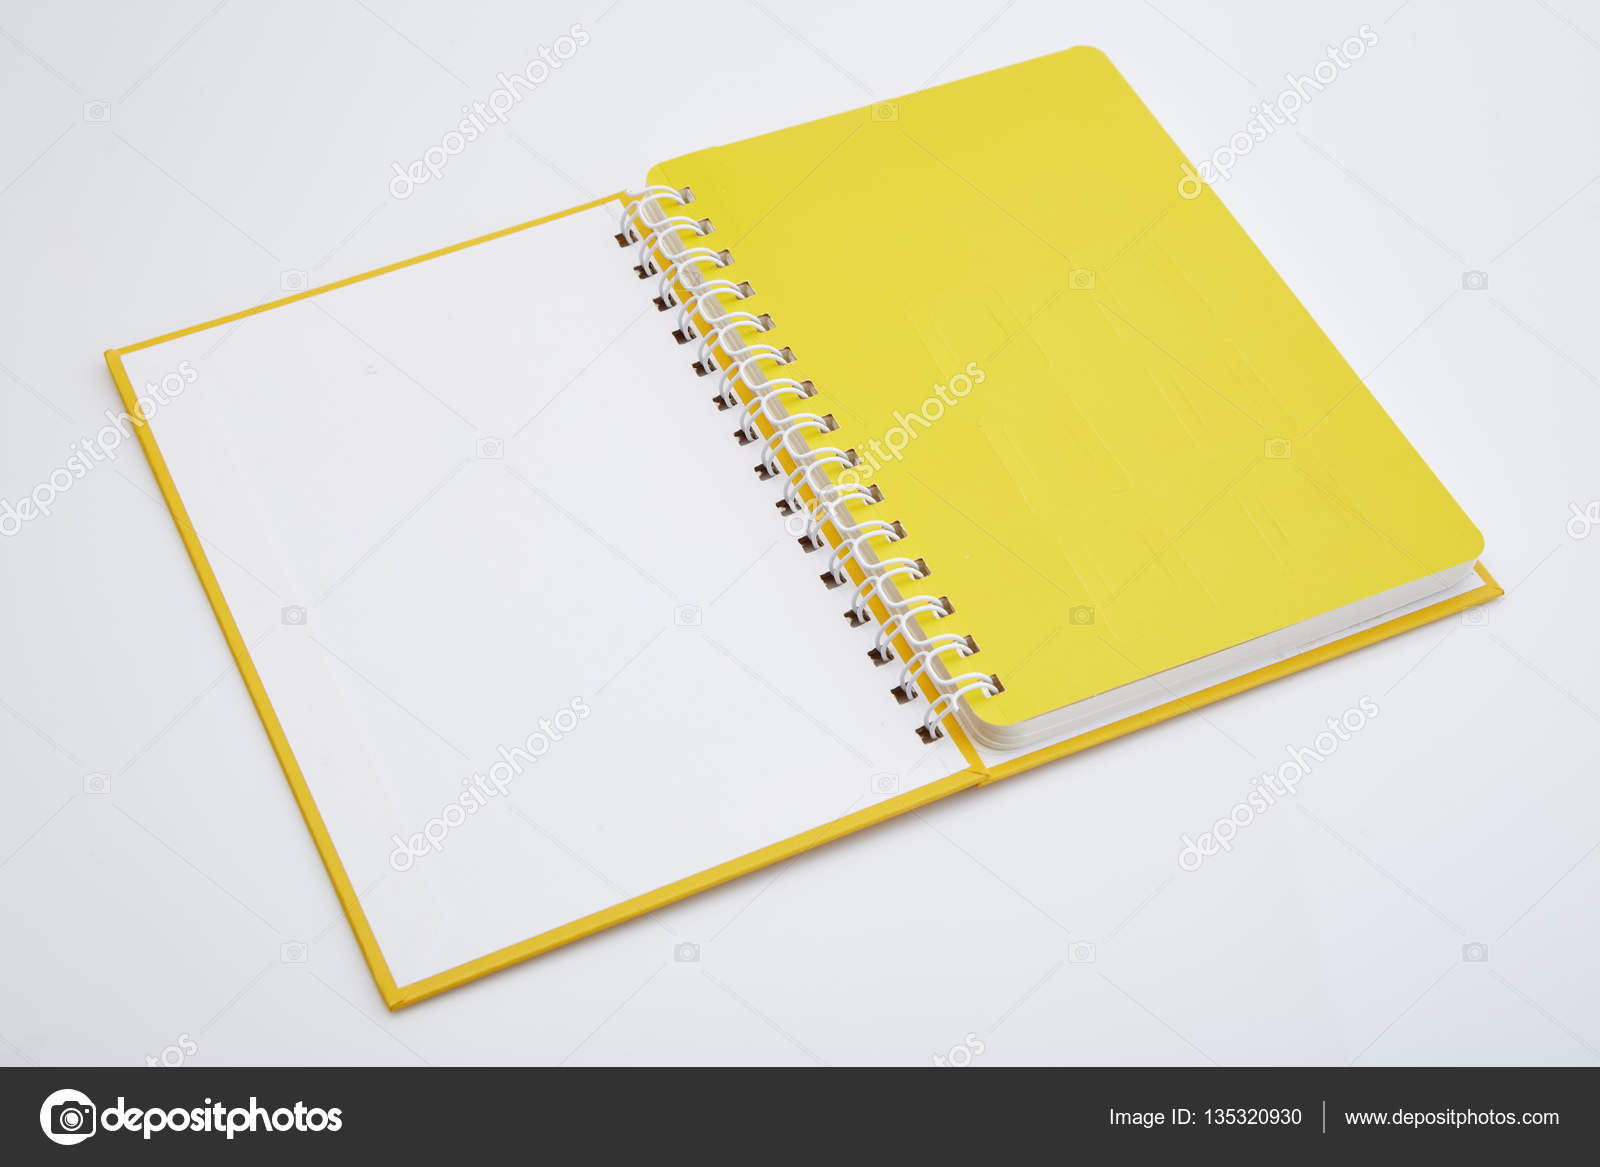 Yellow Notebook On White Background Stock Photo C Pongans68 Gmail